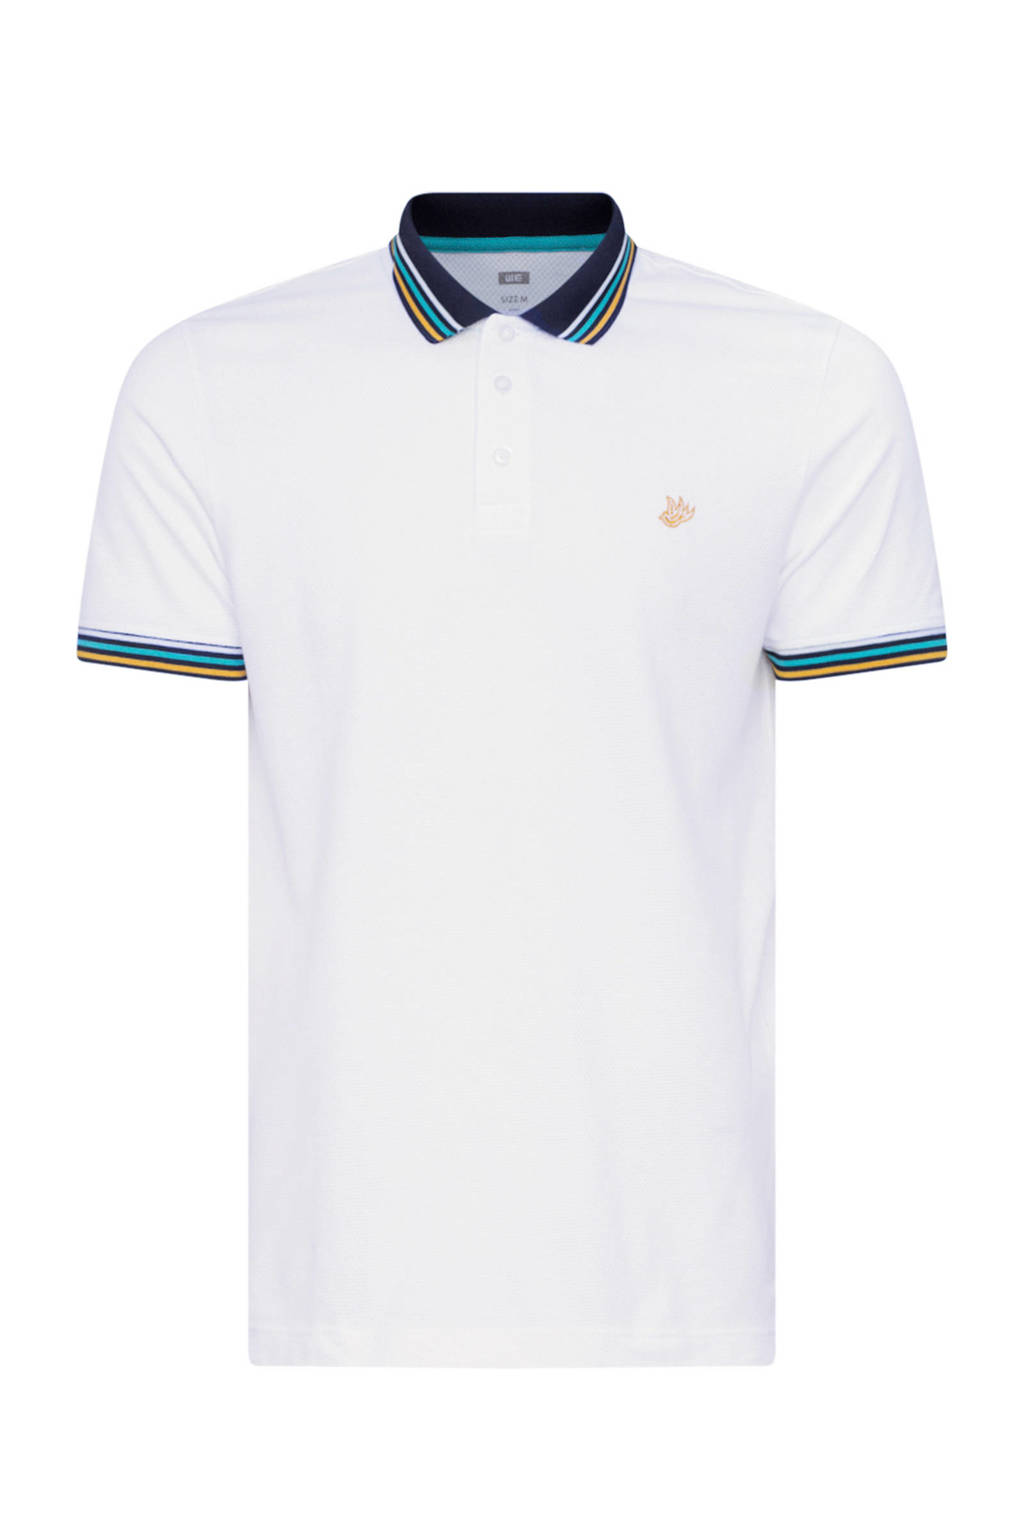 WE Fashion polo wit, Wit/marine/geel/lichtblauw